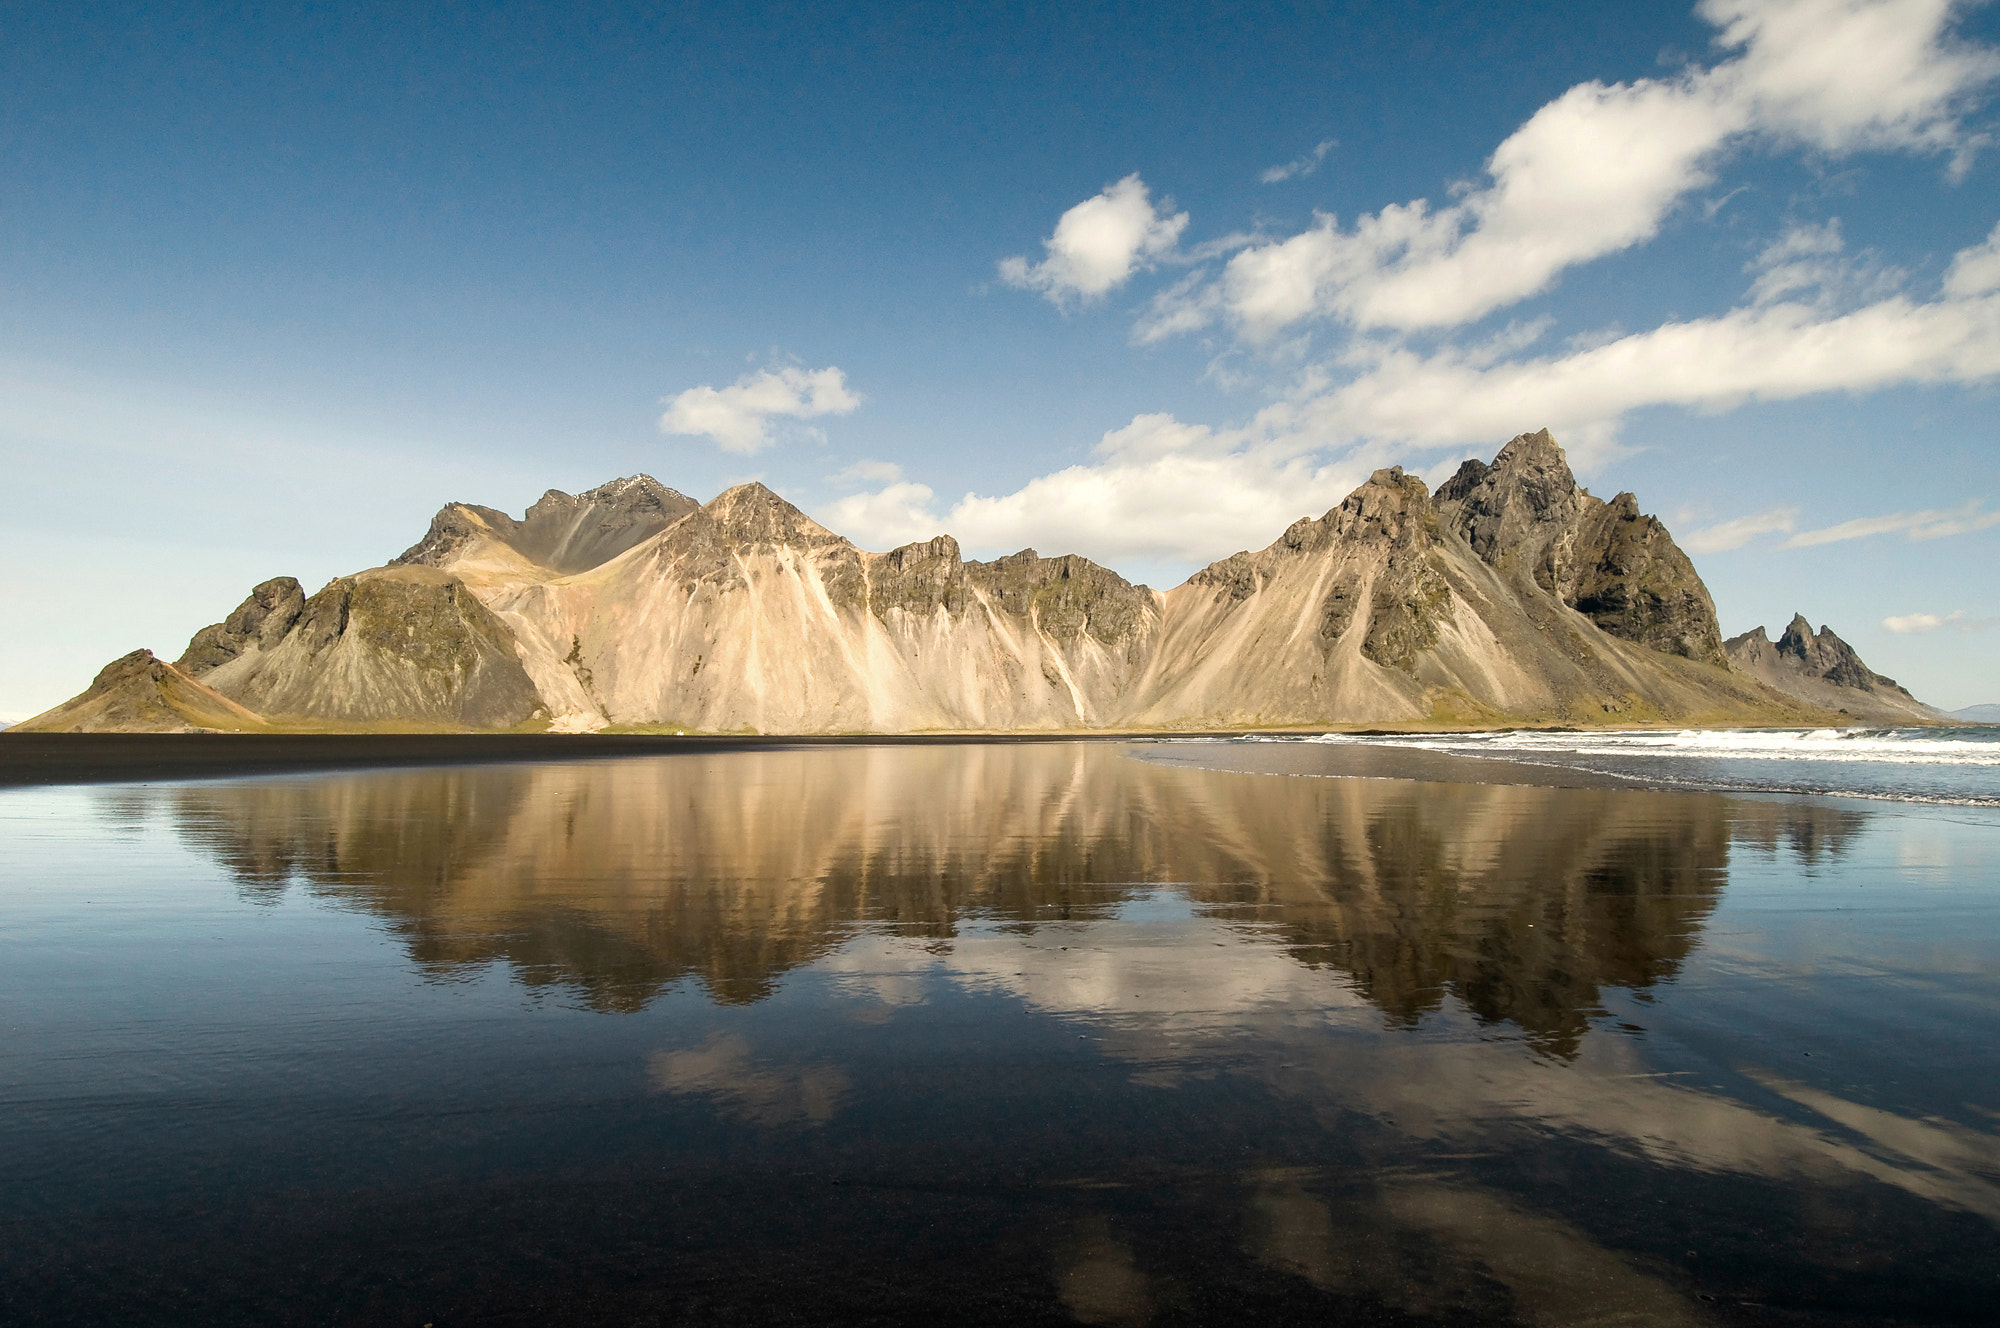 Photograph Day of Reflection by Daniel Bosma on 500px